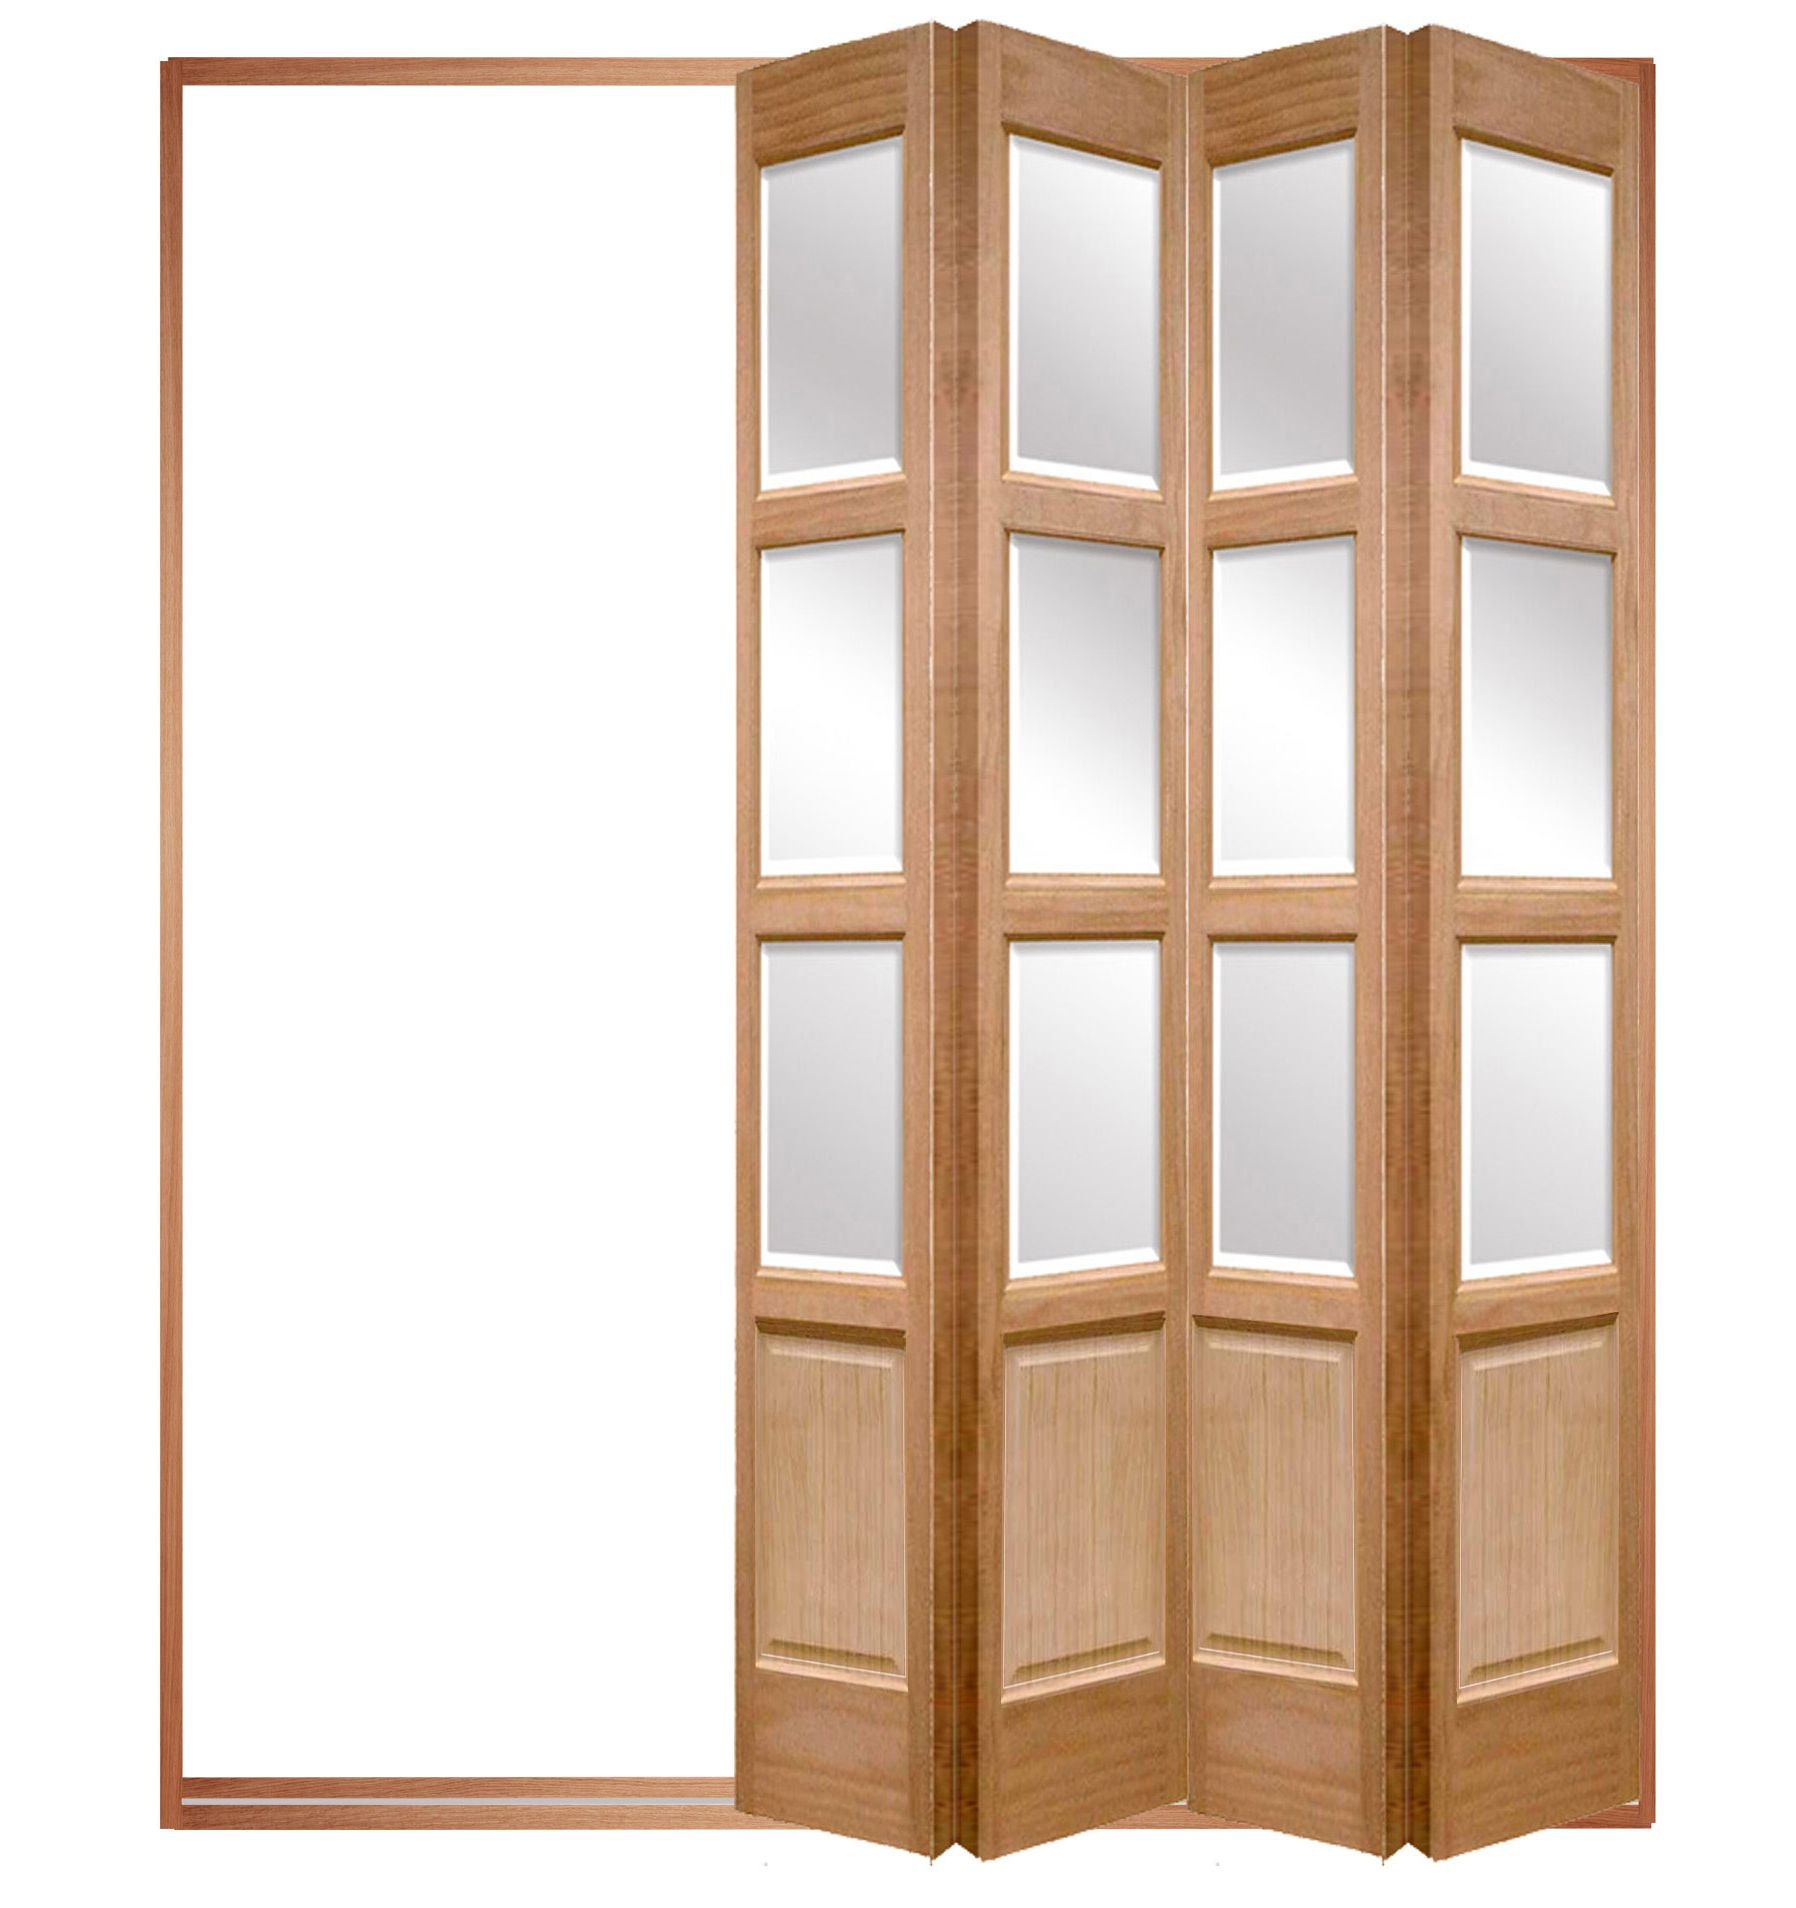 Interior wood doors oak 4panel craftsman raised panel Wooden interior